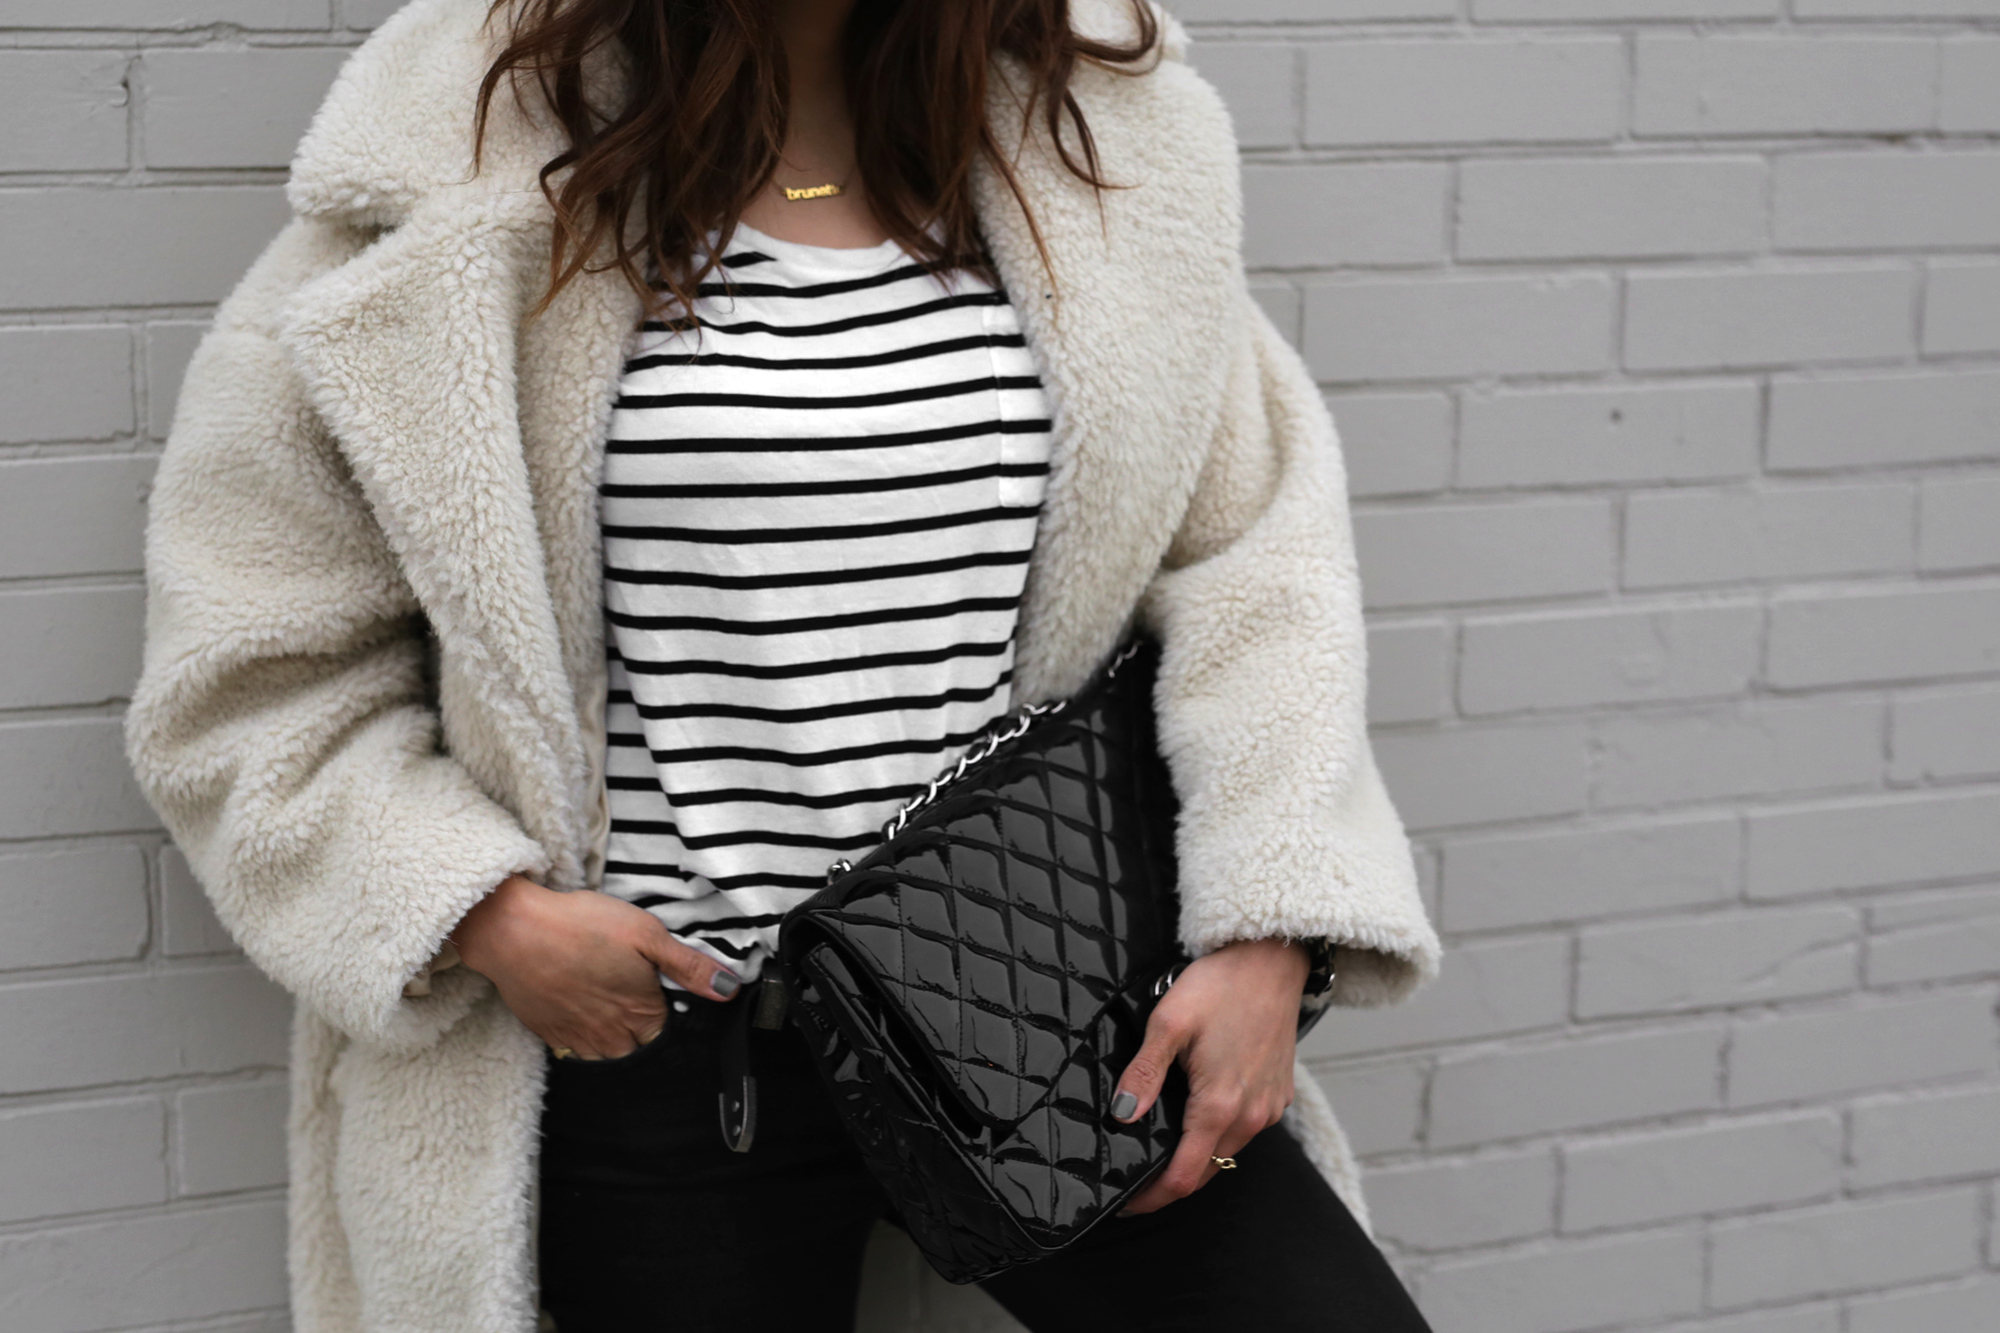 Fuzzy Topshop coat, striped top, black skinny jeans and patent leather Chanel jumbo bag street style - rocker chic - parisian style - french style_2941.jpg